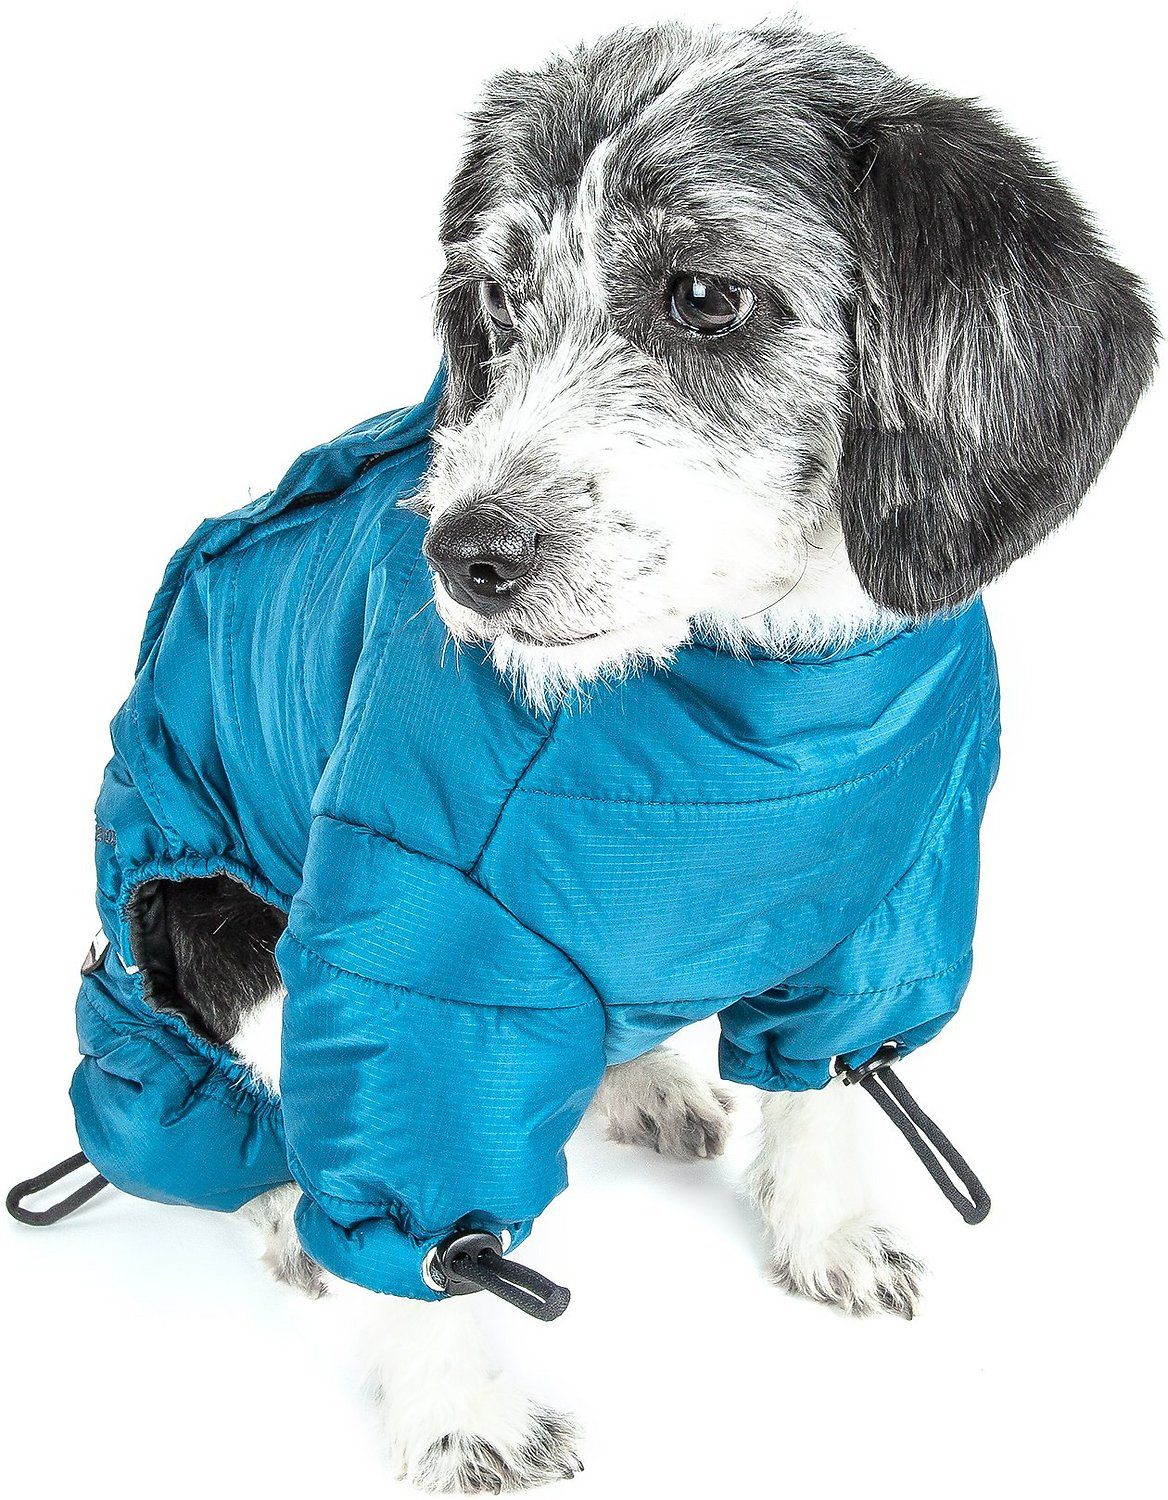 dog in helios jacket